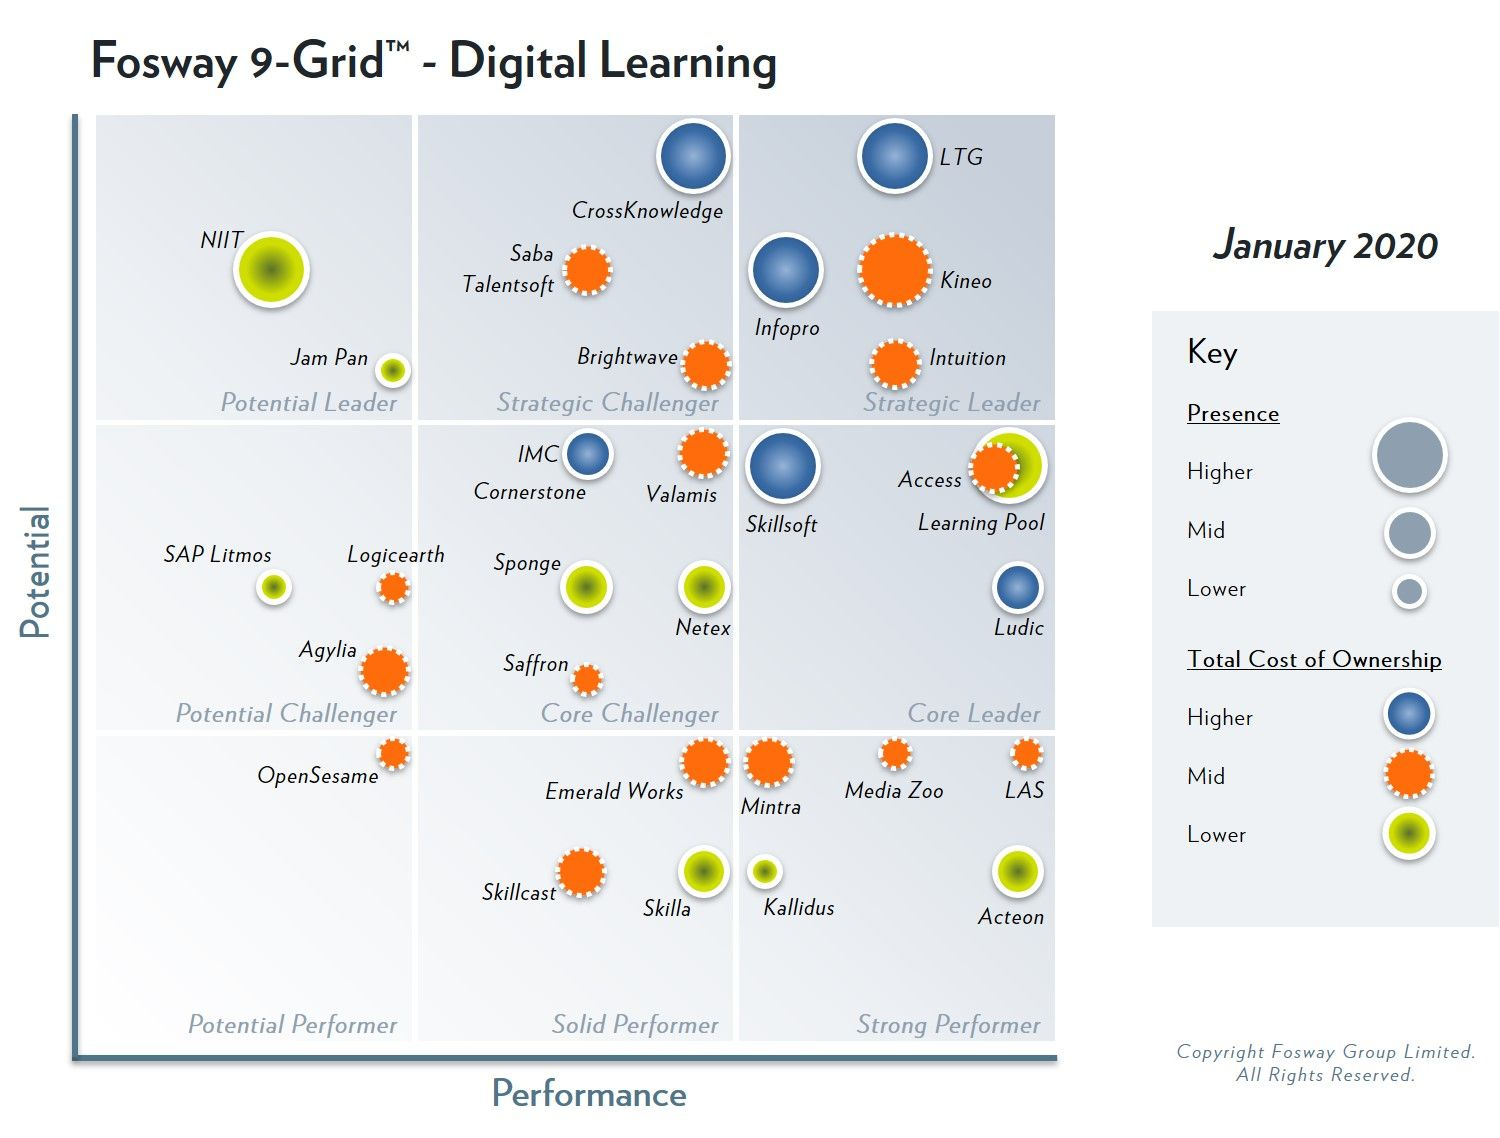 PeopleFluent's parent company, Learning Technologies Group, has been identified as Strategic Leader in the 2020 Fosway 9-Grid™ for Digital Learning for the fourth year running